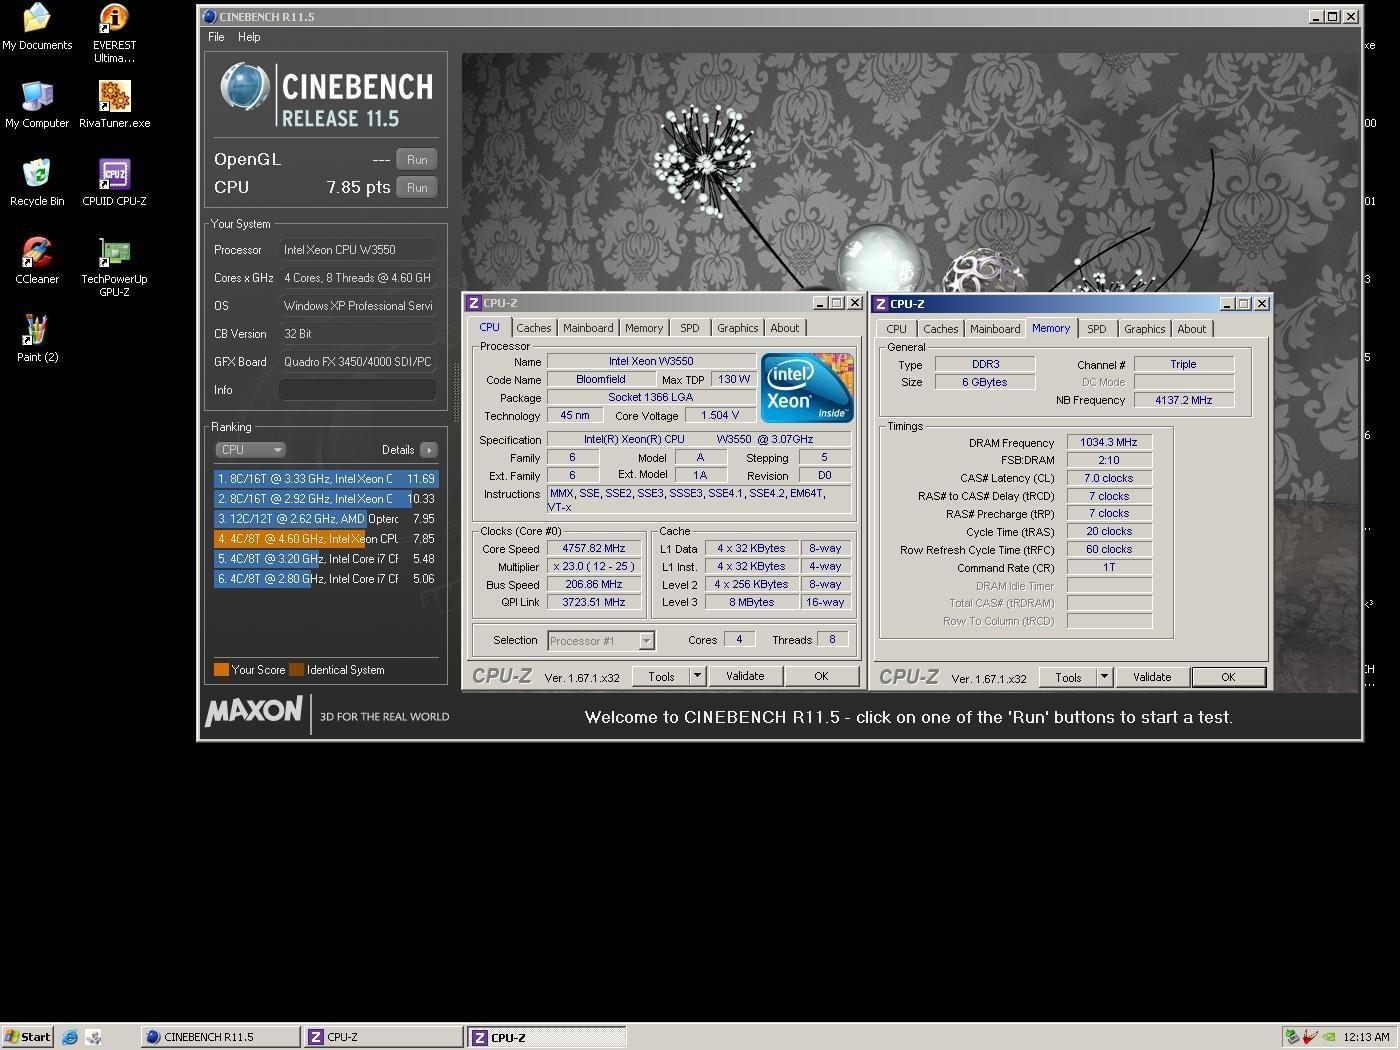 Aleslammer`s Cinebench - R11 5 score: 7 85 points with a